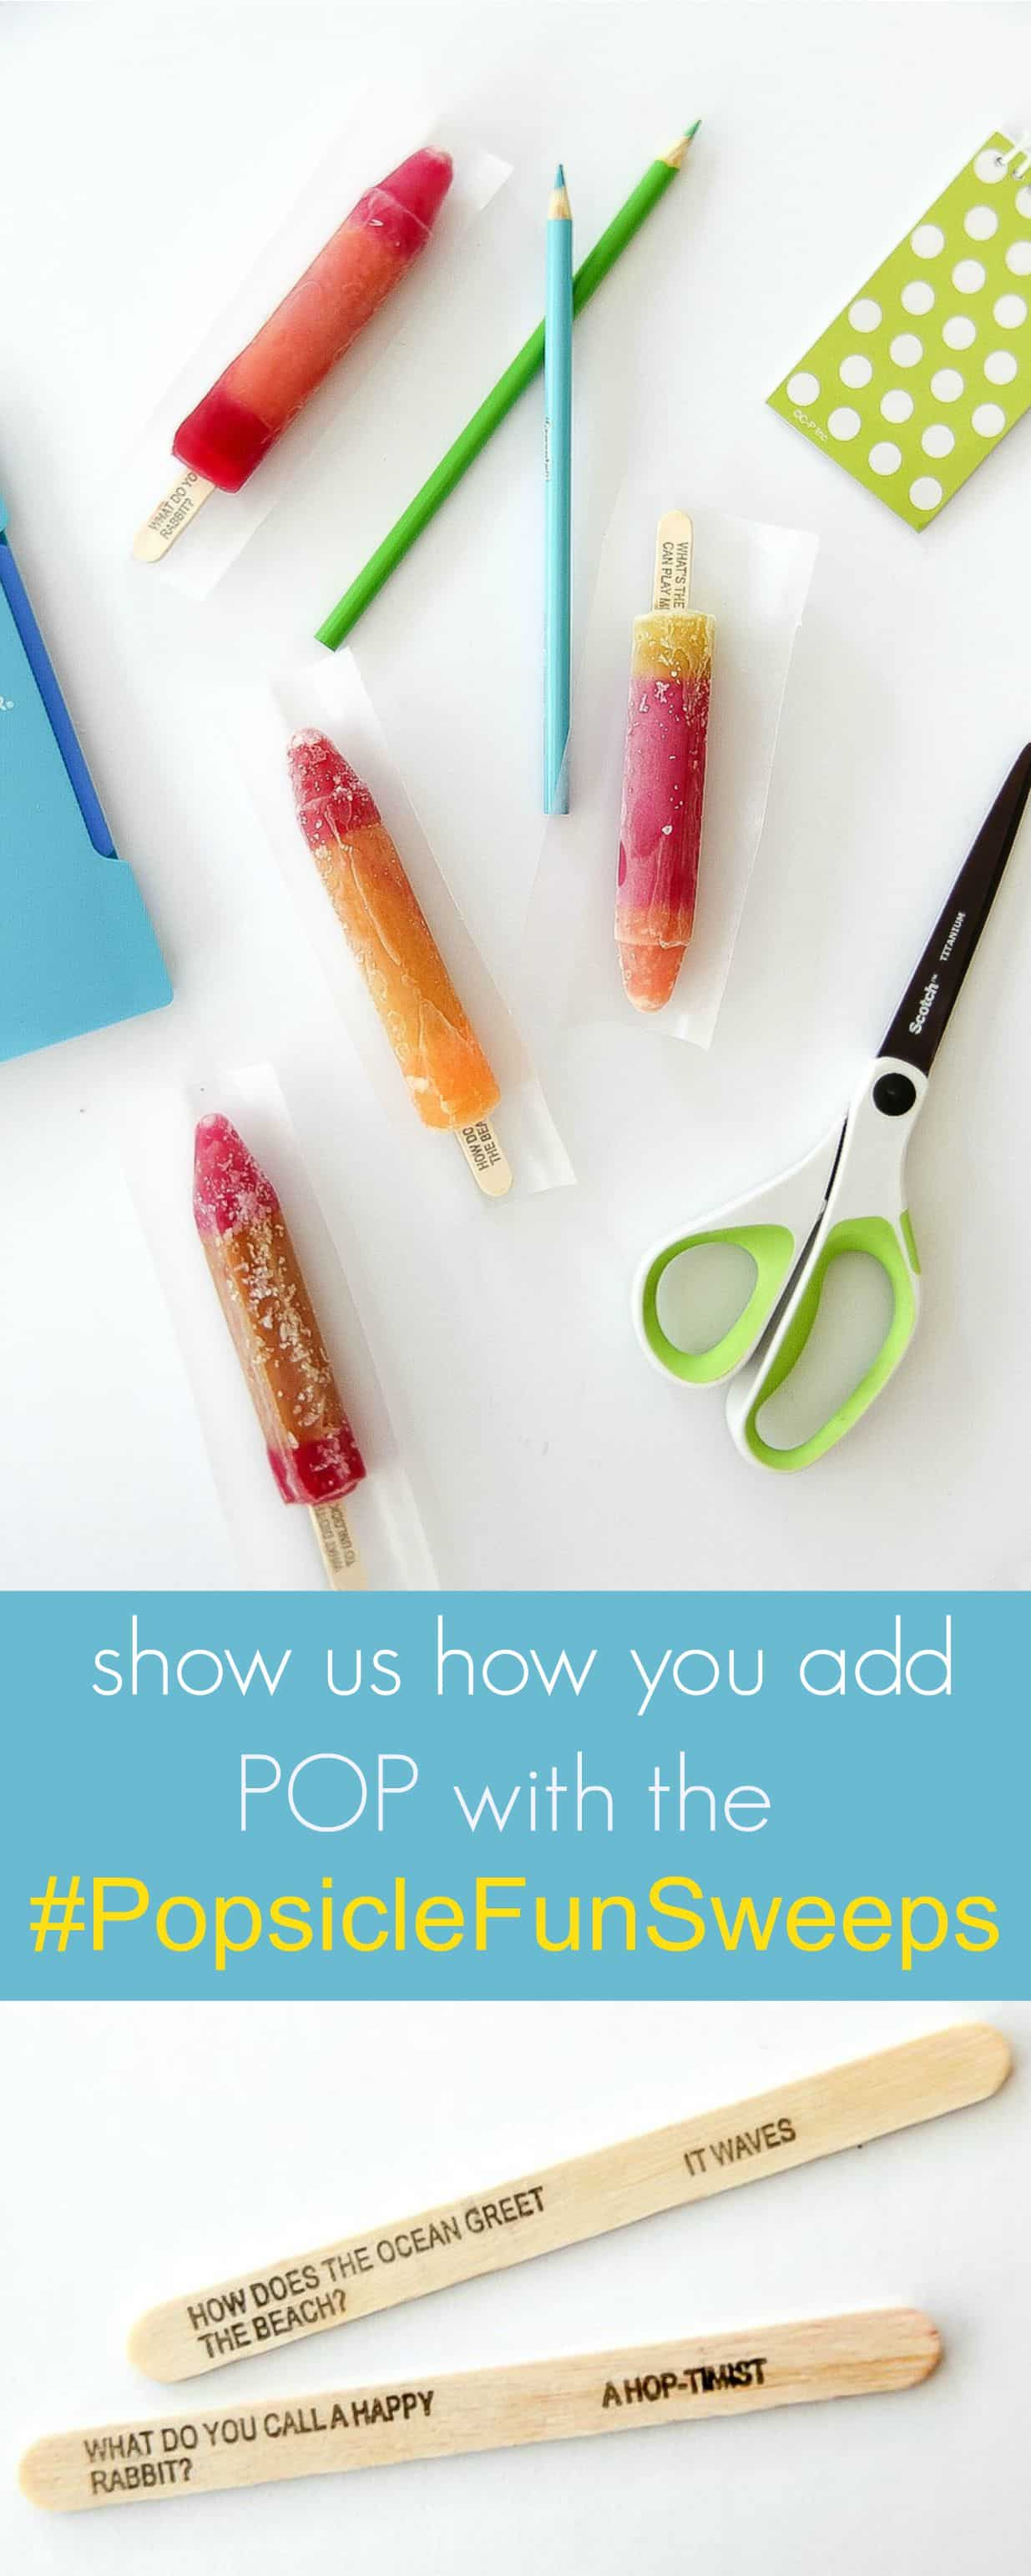 Show us how you add POP to your summer and enter the #PopsicleFunSweeps